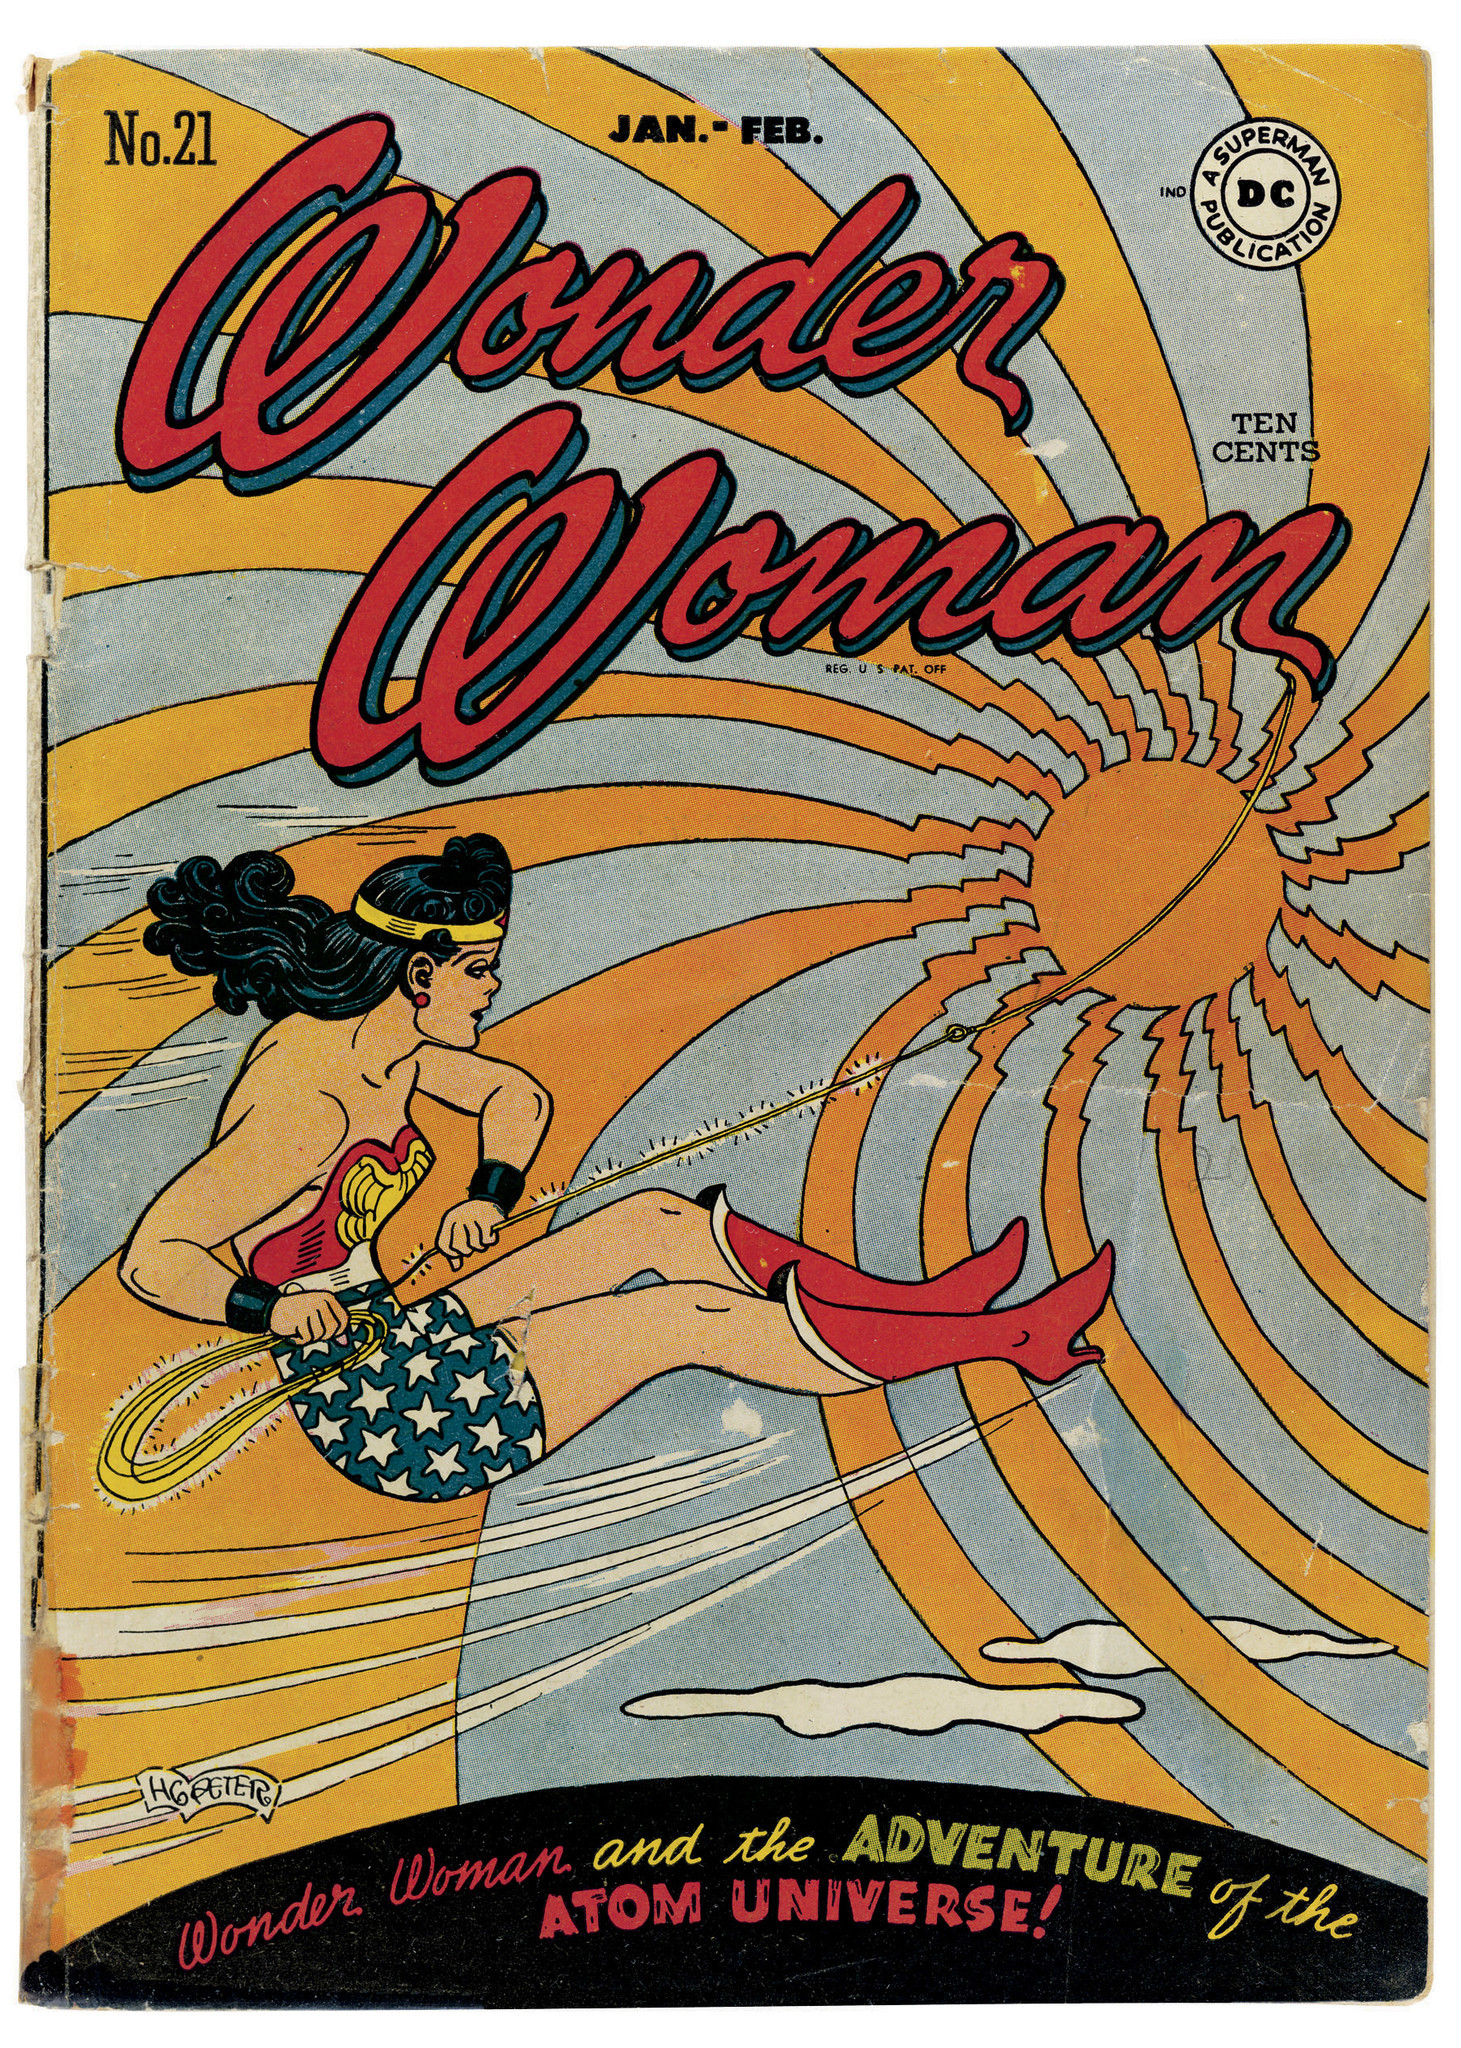 """The cover of """"Wonder Woman"""" No. 21 (Jan. - Feb. 1947) by H. G. Peter."""